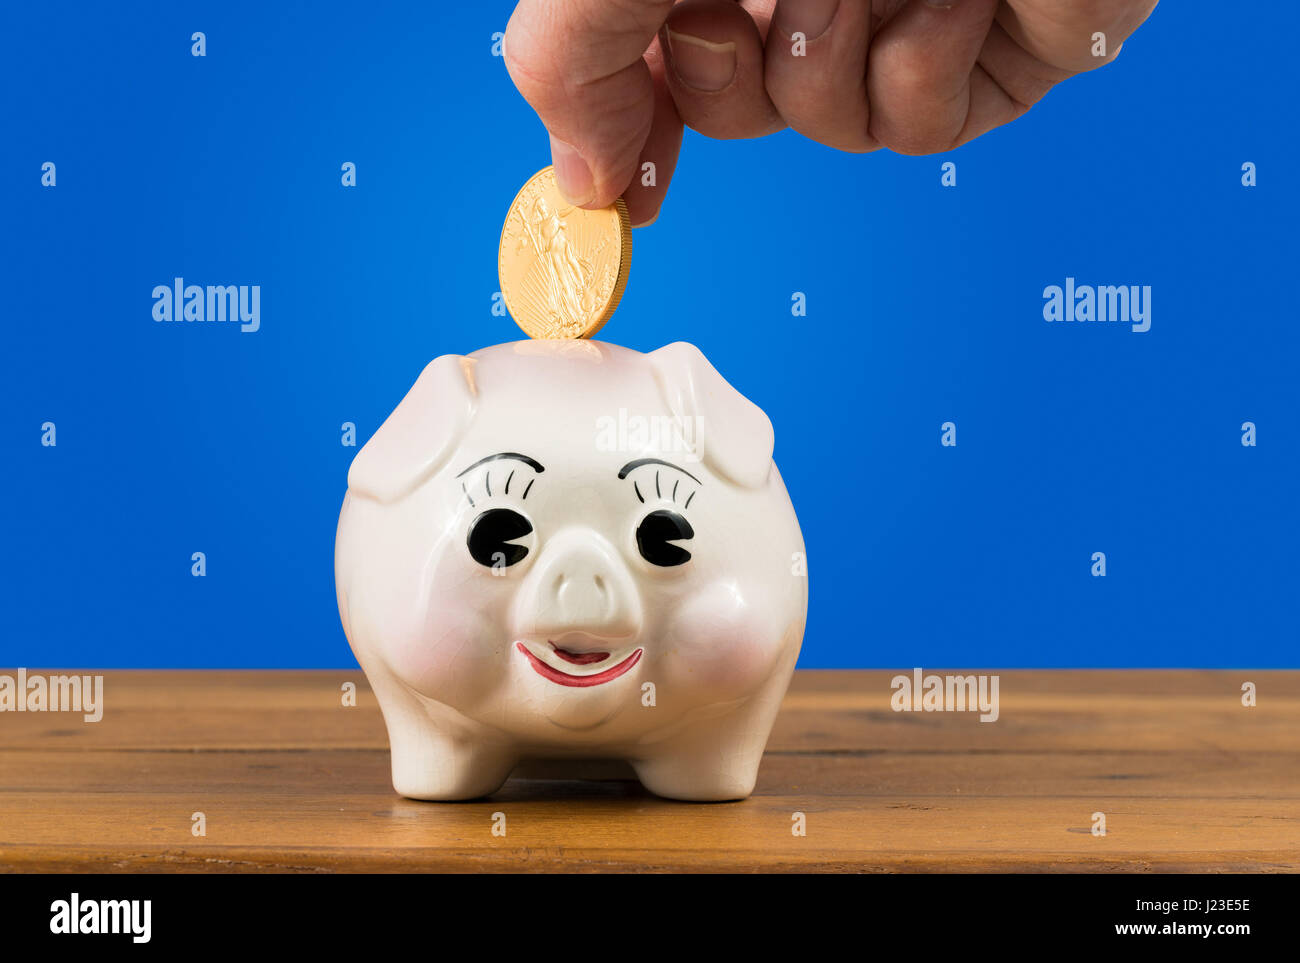 Piggy bank with a hand putting a gold coin in - savings or investment concept - Stock Image